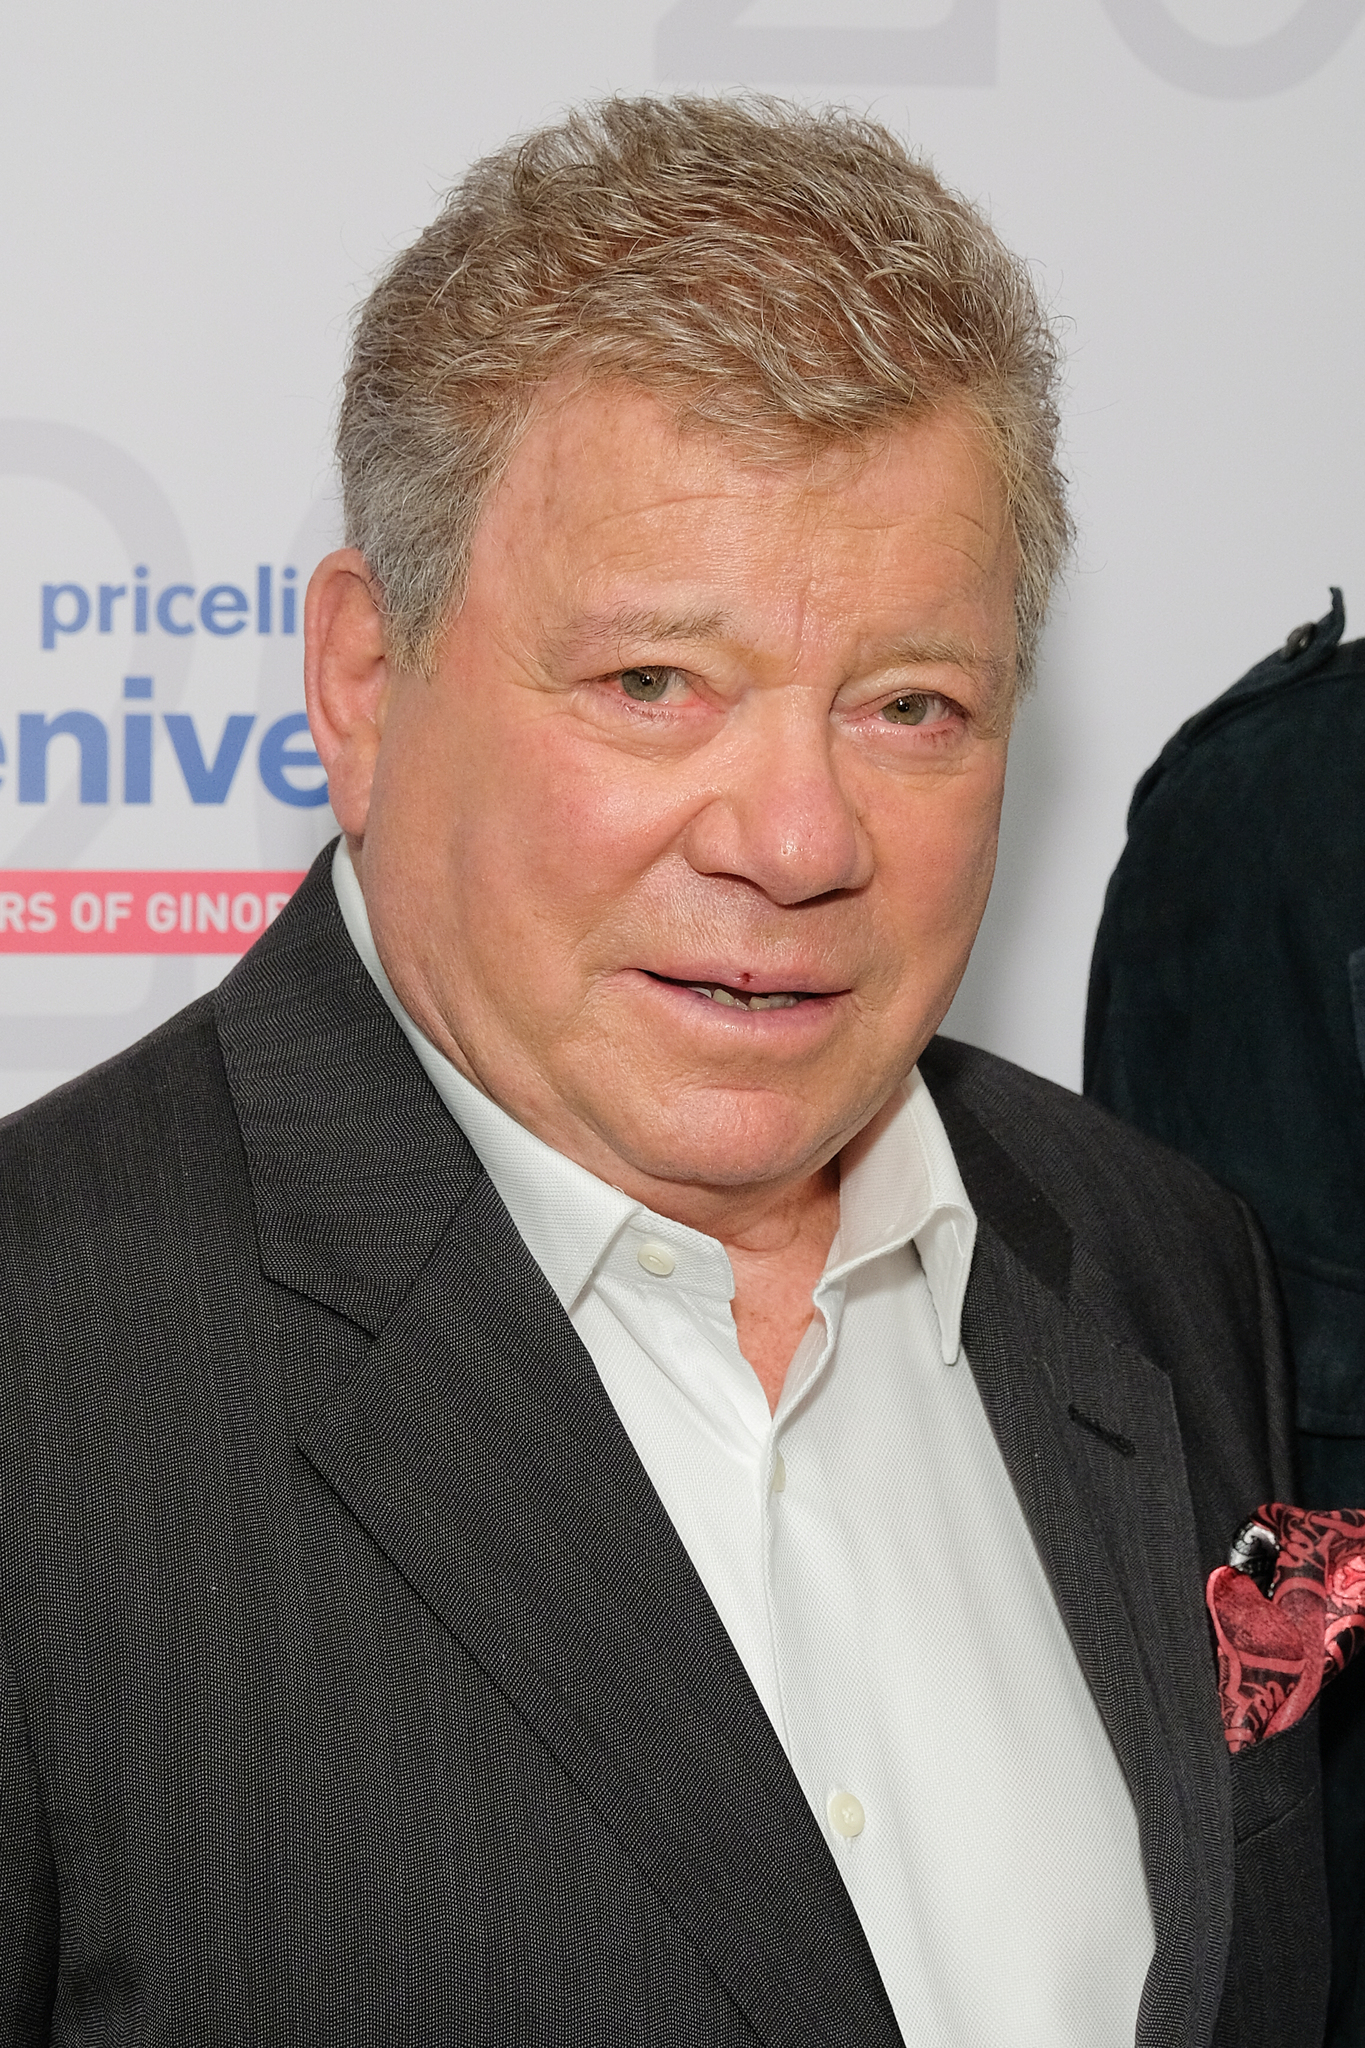 William Shatner Imdb